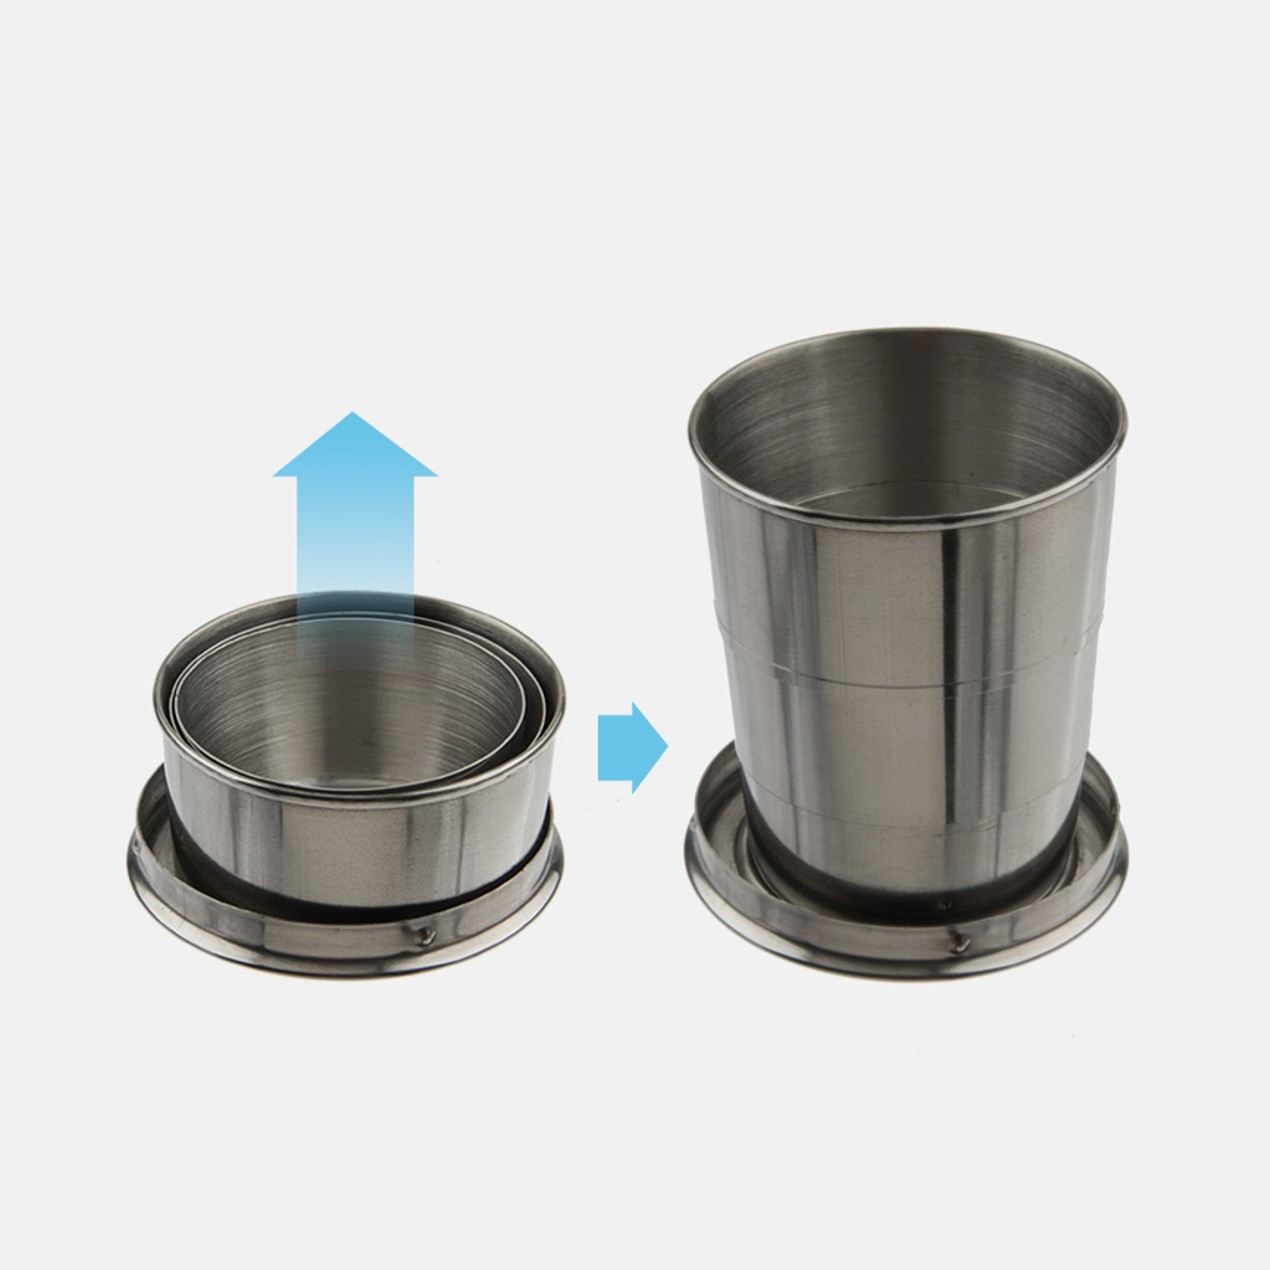 2pk Expedition Stainless Steel Collapsible Cup Tanga Travel